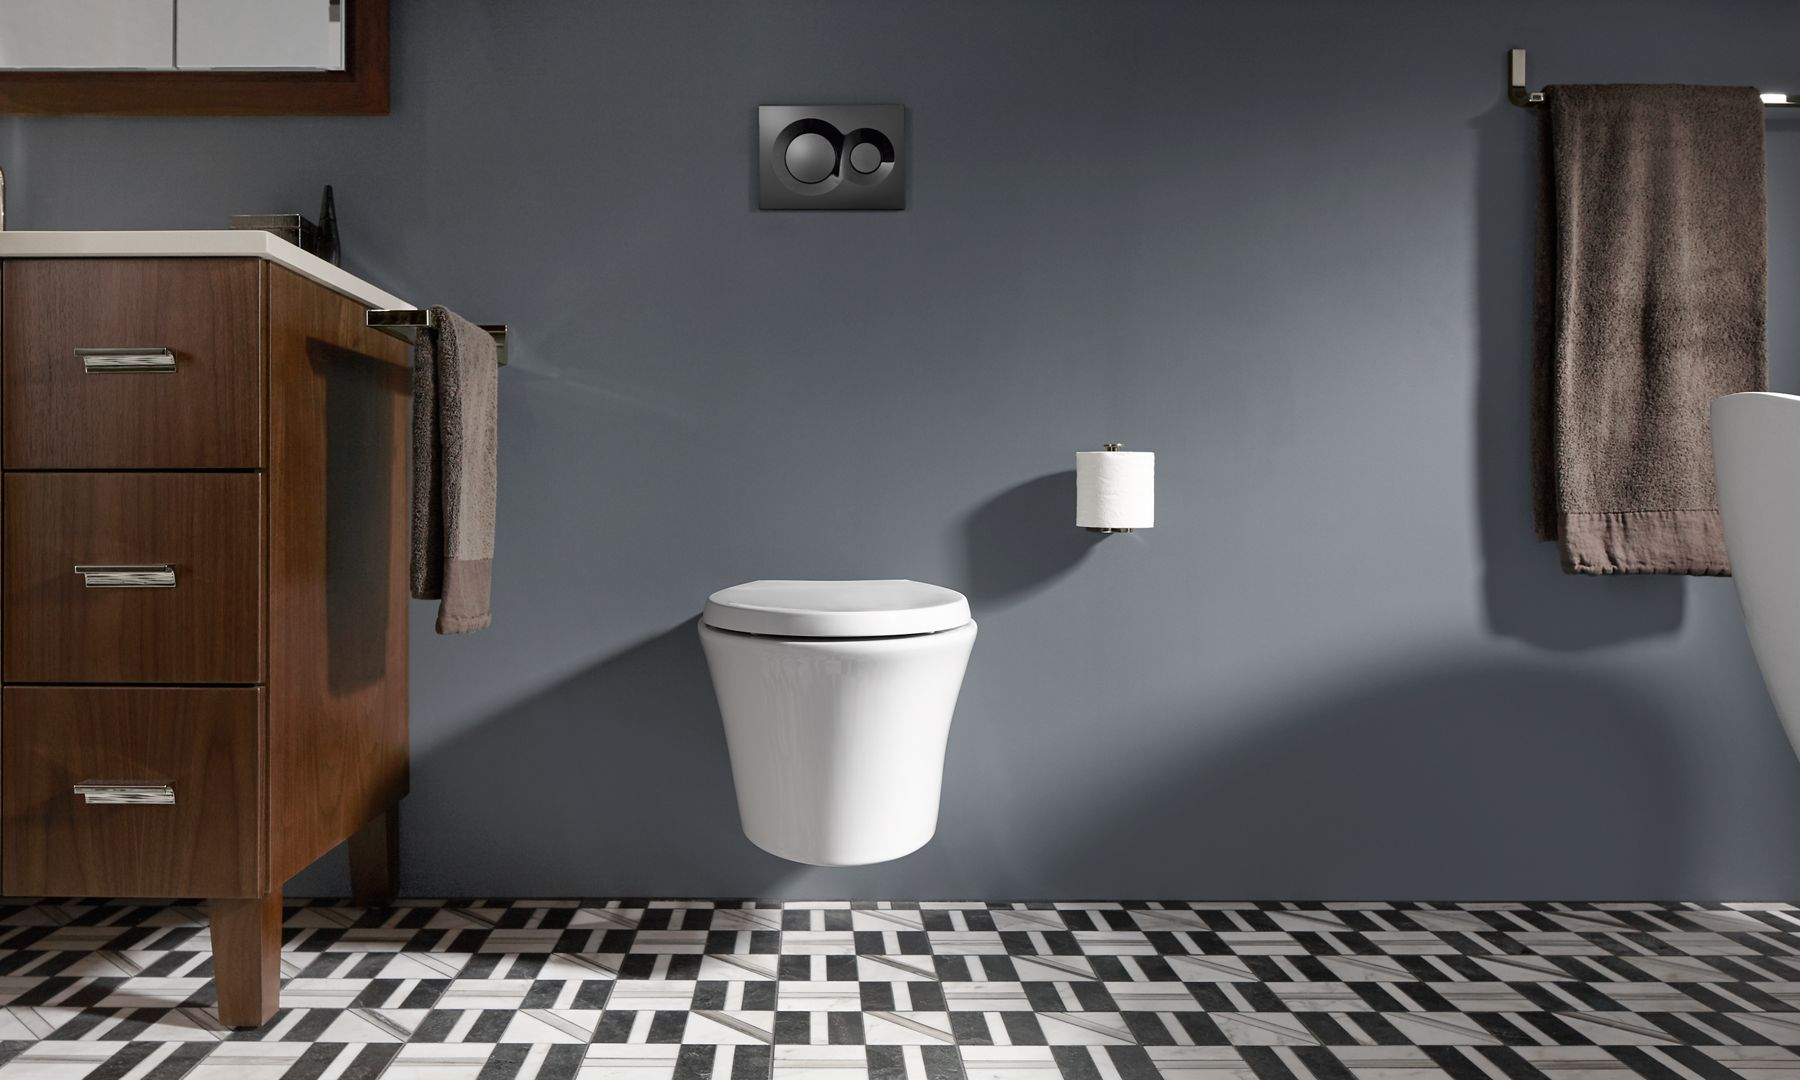 Considerations To Keep In Mind : bathroom-innovation - designwebi.com